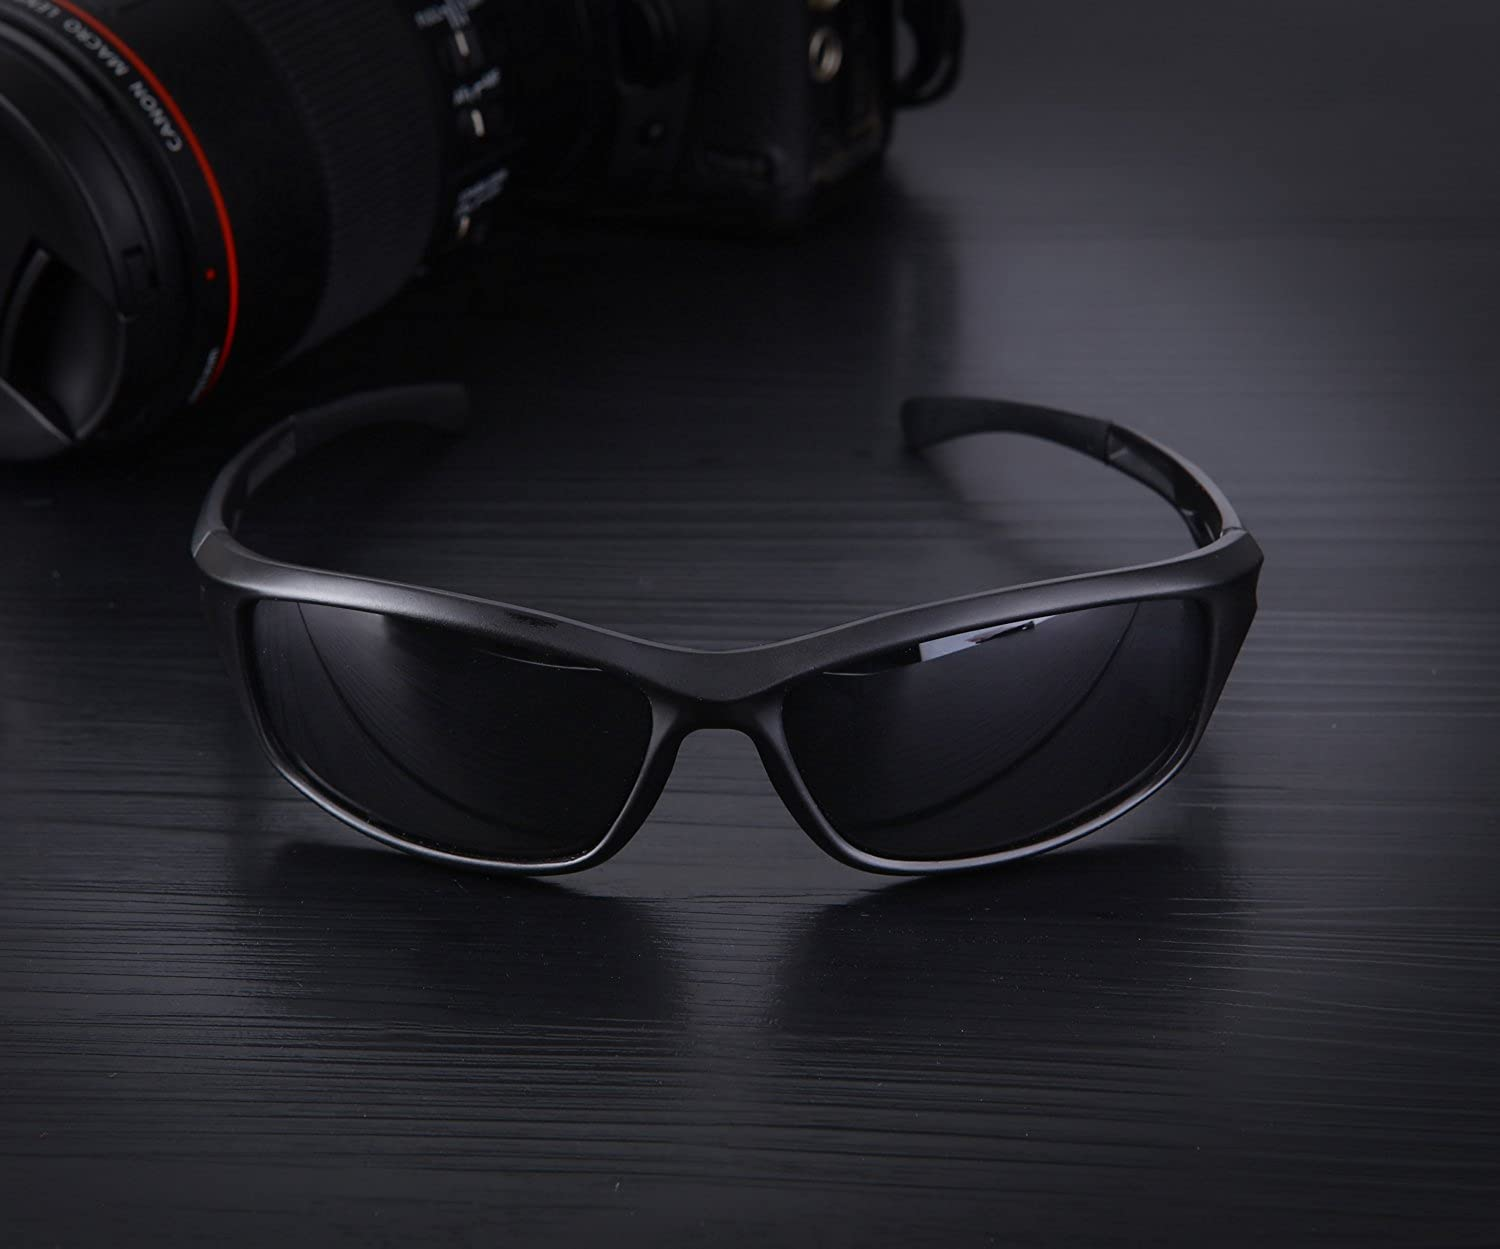 f5b07a7f3d4 BRIGADA Polarized Cool Black Fashion Driving Sport Sunglasses for Men to Keep  Safe   Cool